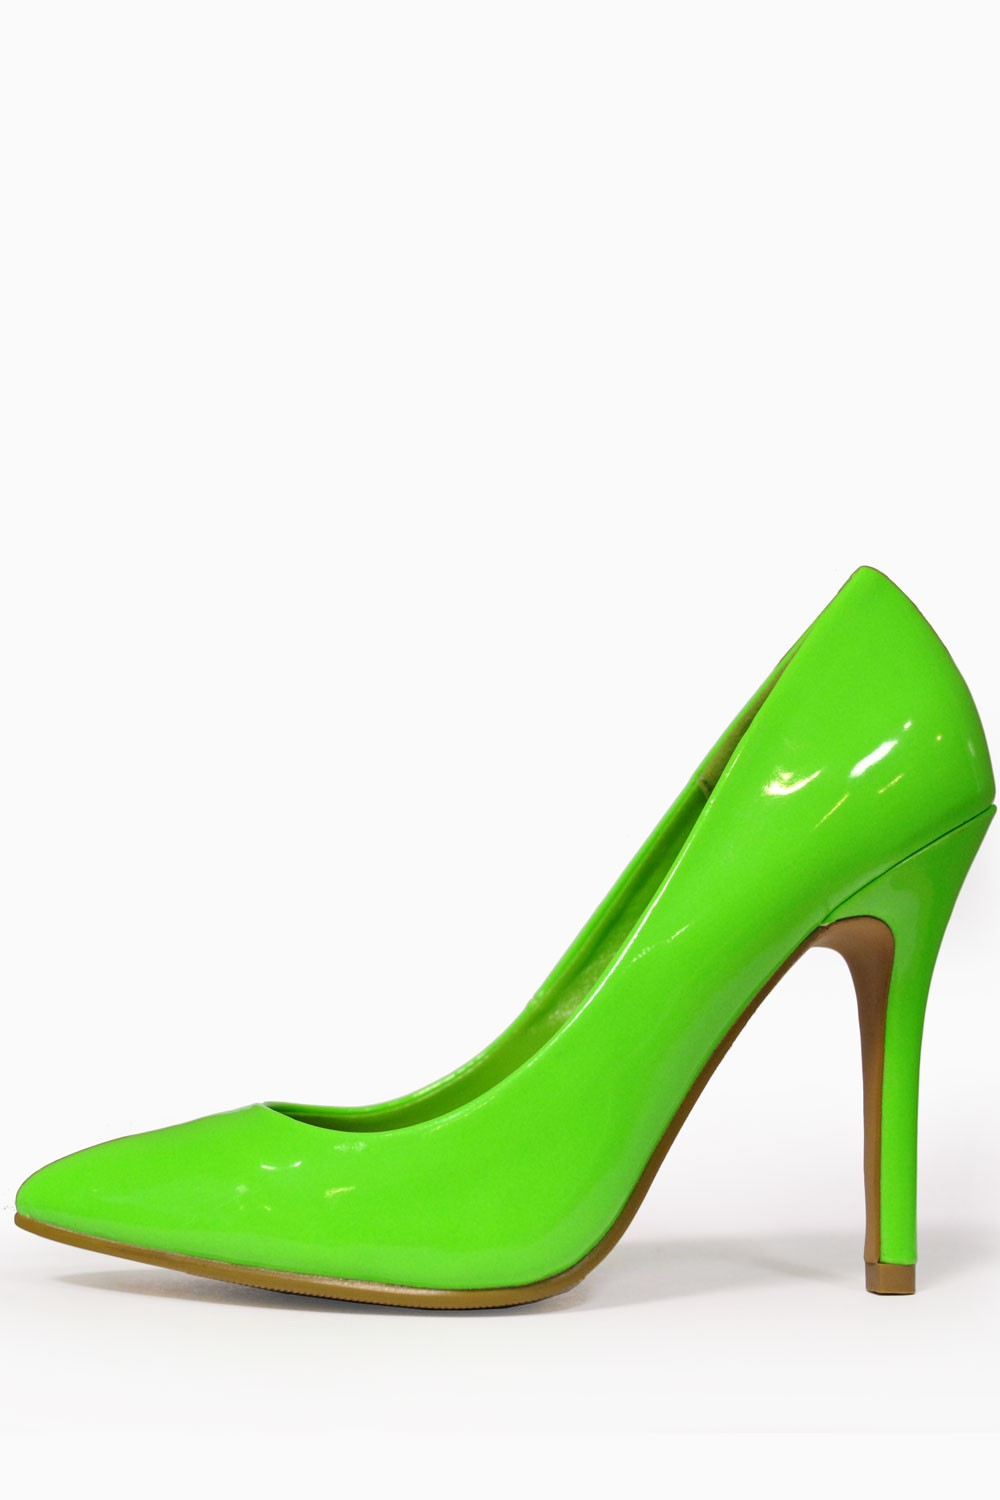 Image result for neon green shoes